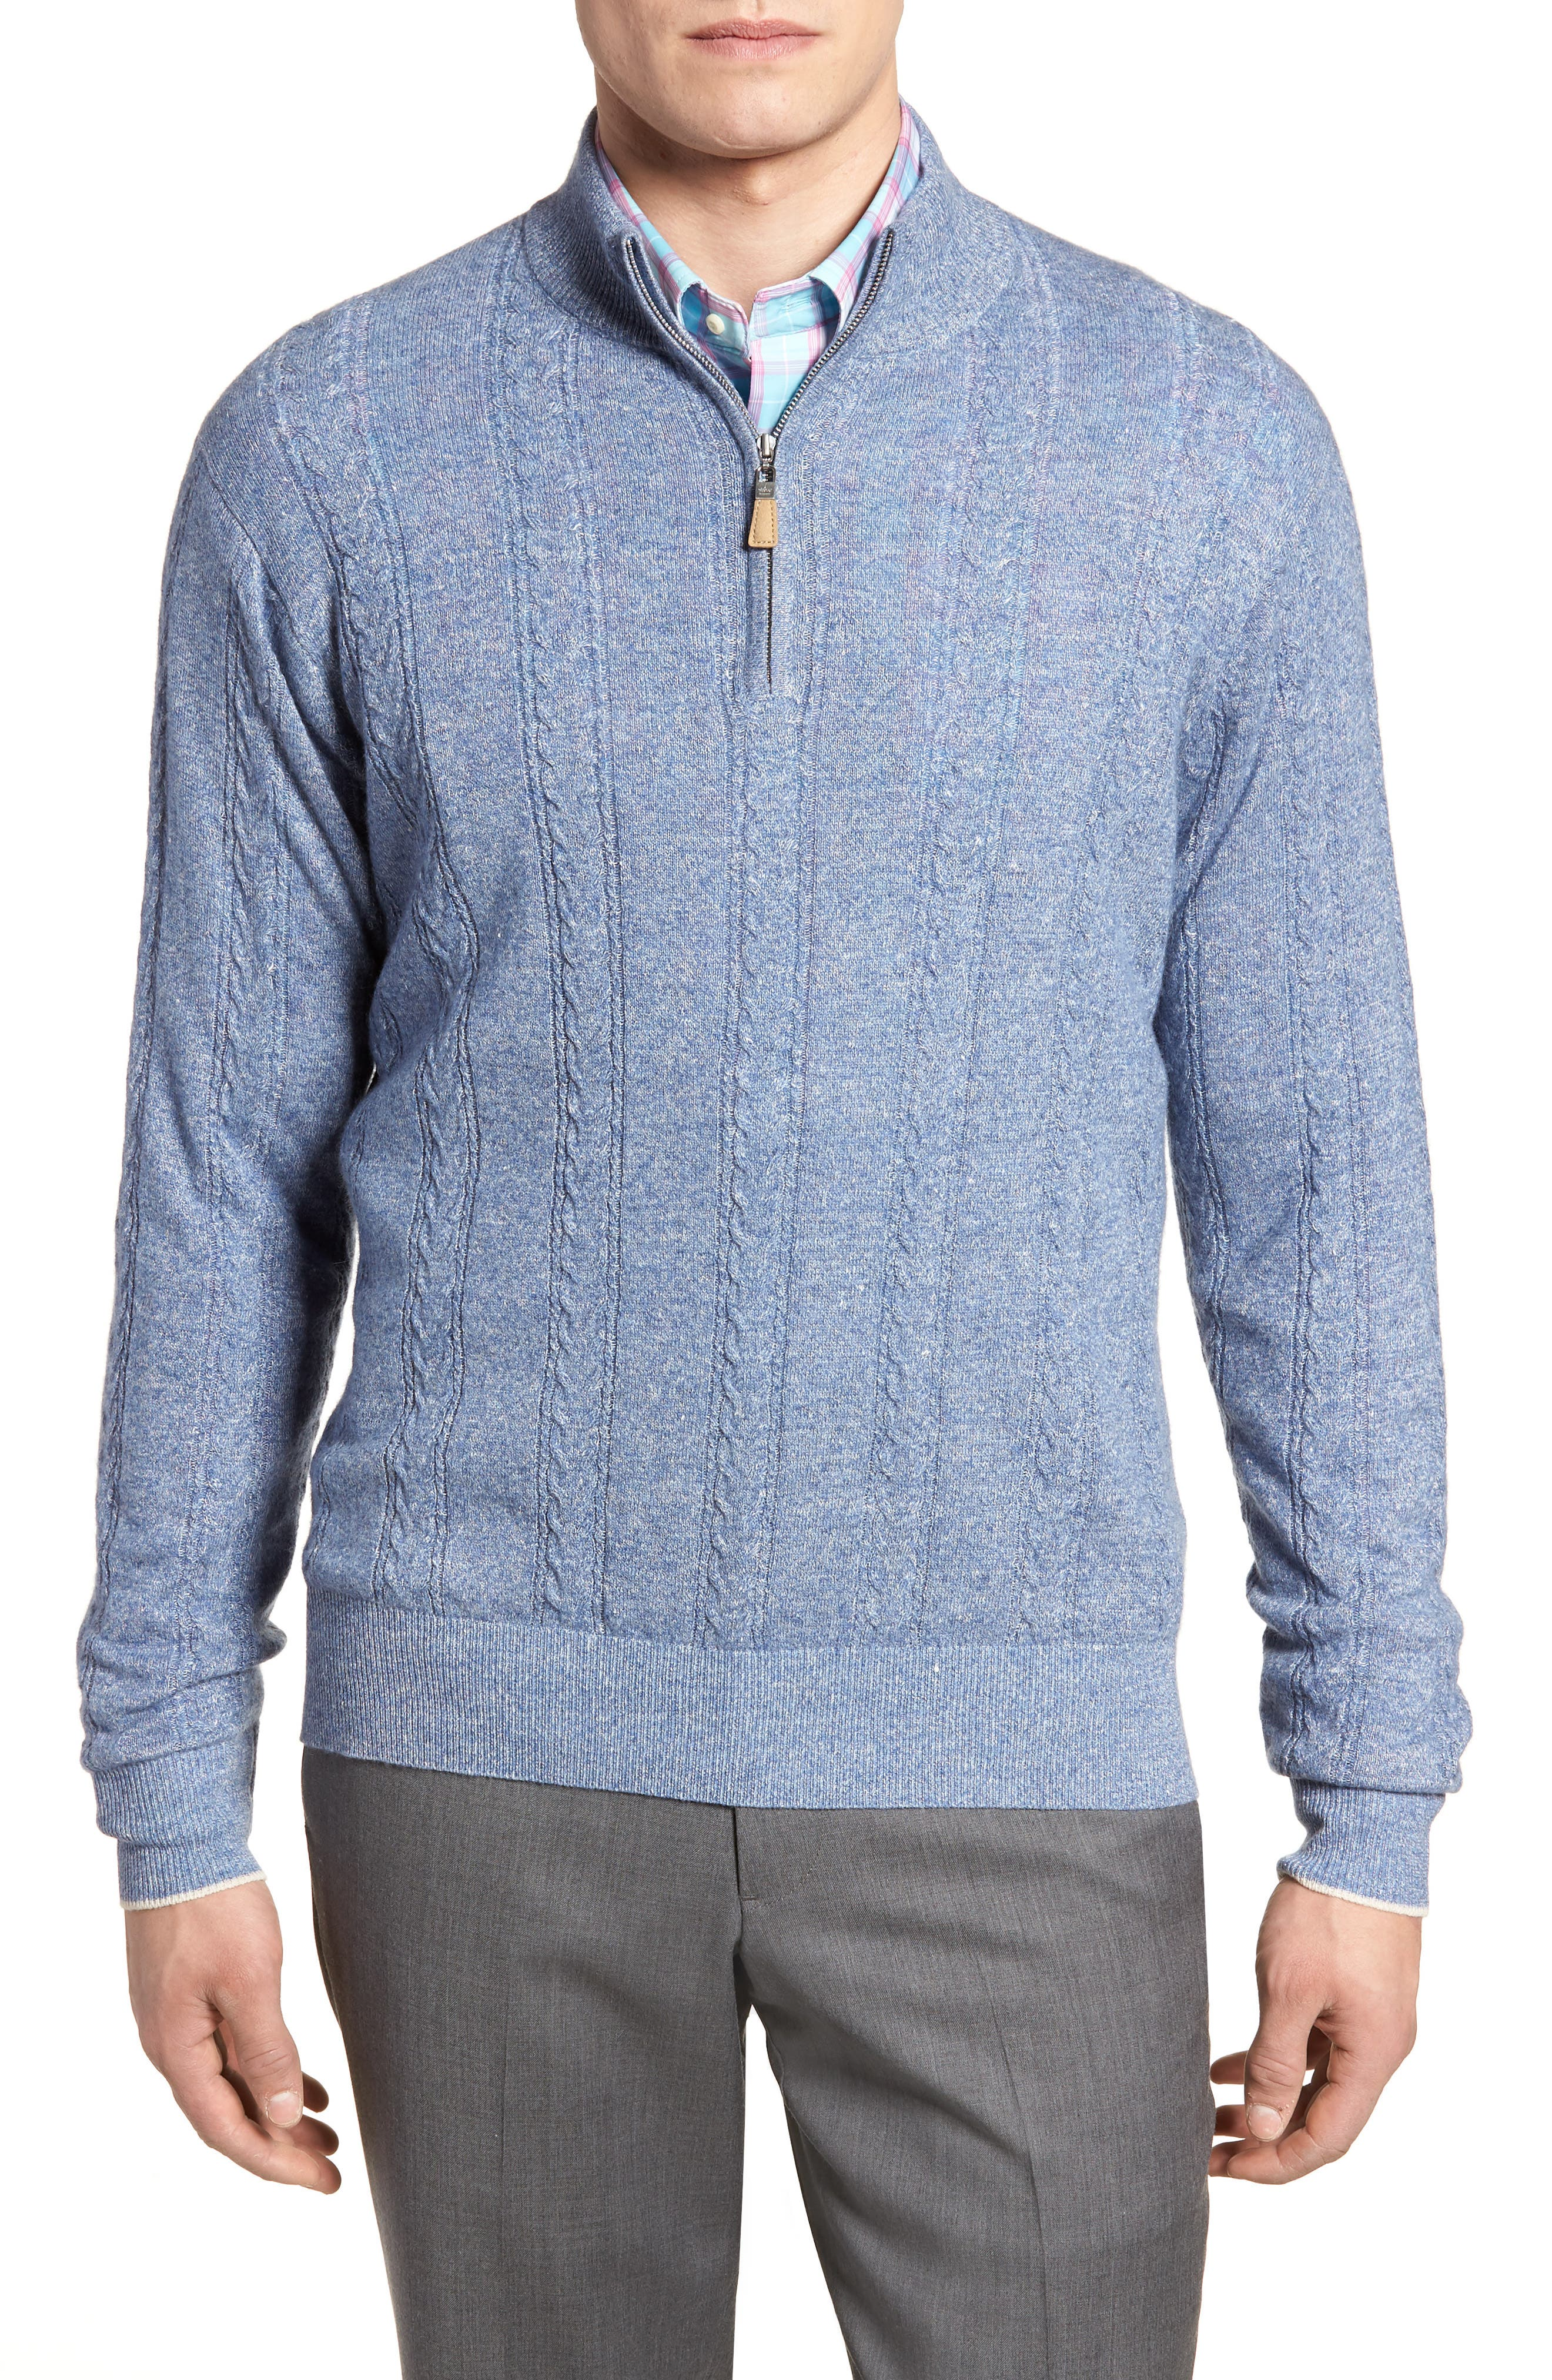 Crown Fleece Cashmere & Linen Quarter Zip Sweater,                         Main,                         color, Atlas Blue